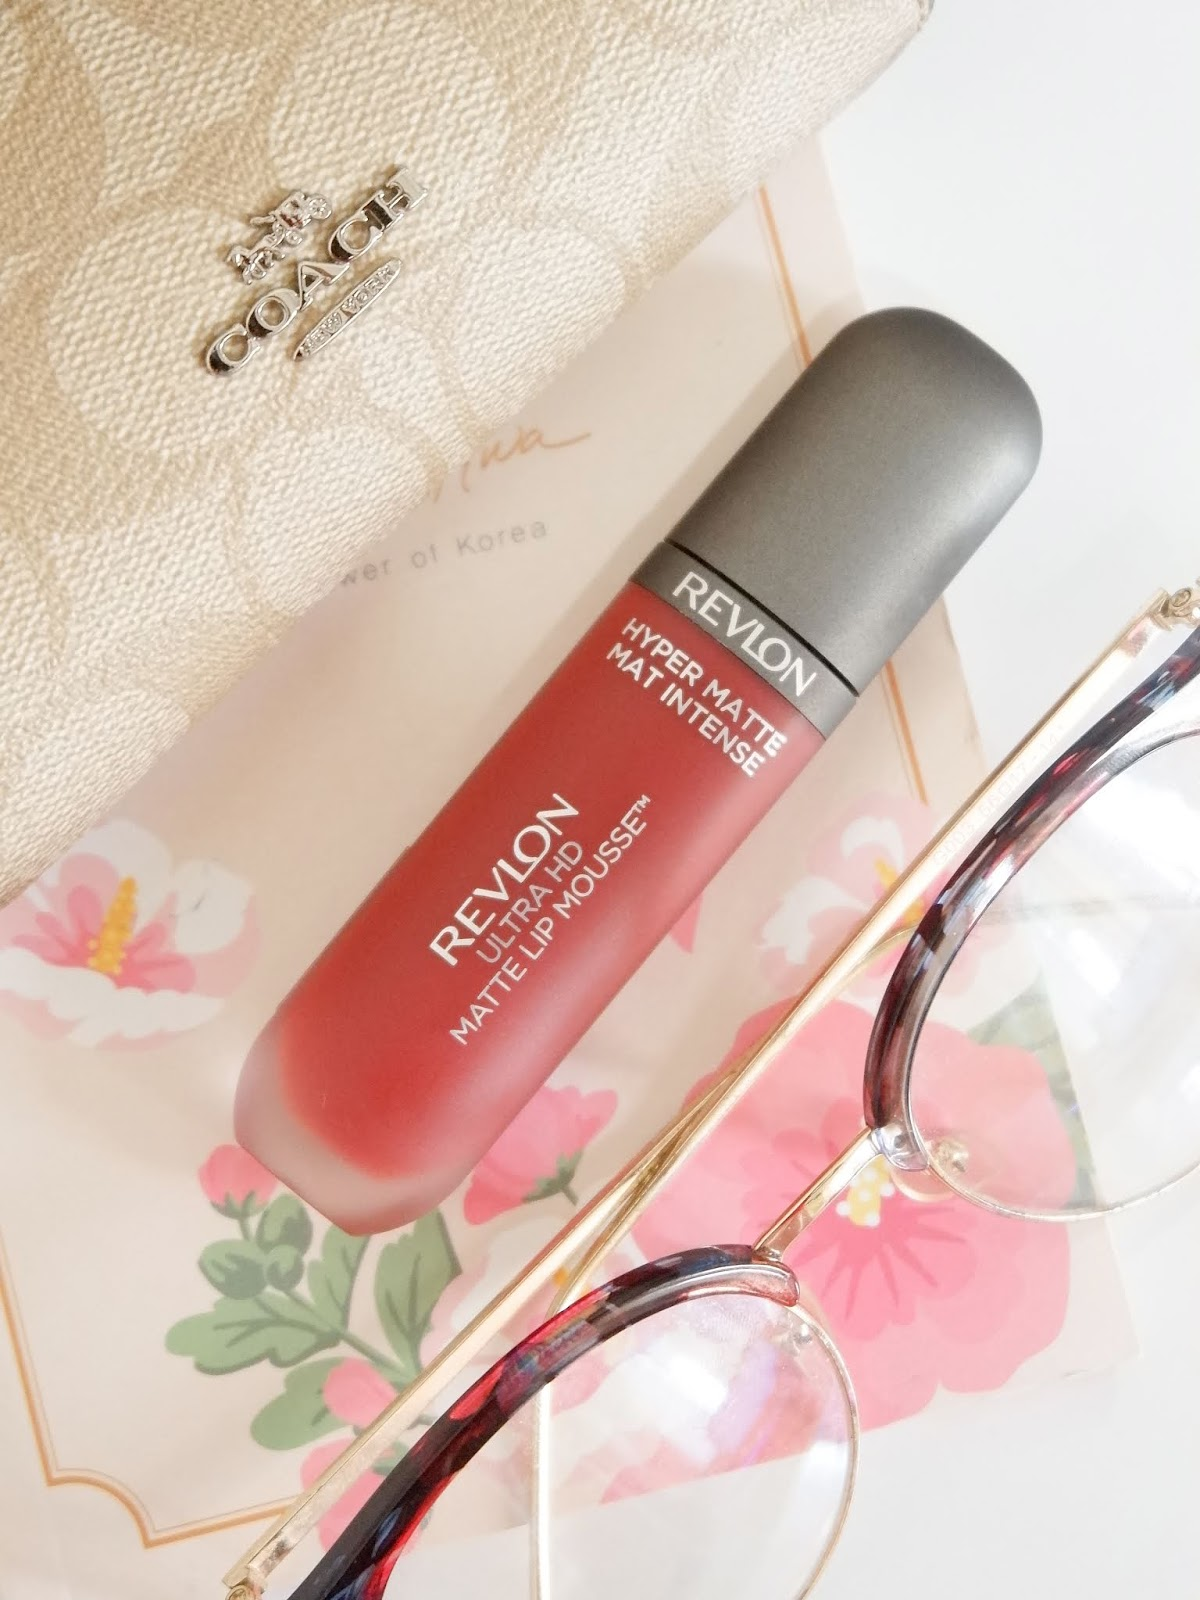 REVLON ULTRA HD MATTE LIP MOUSSE HYPER MATTE REVIEW (SPICE)